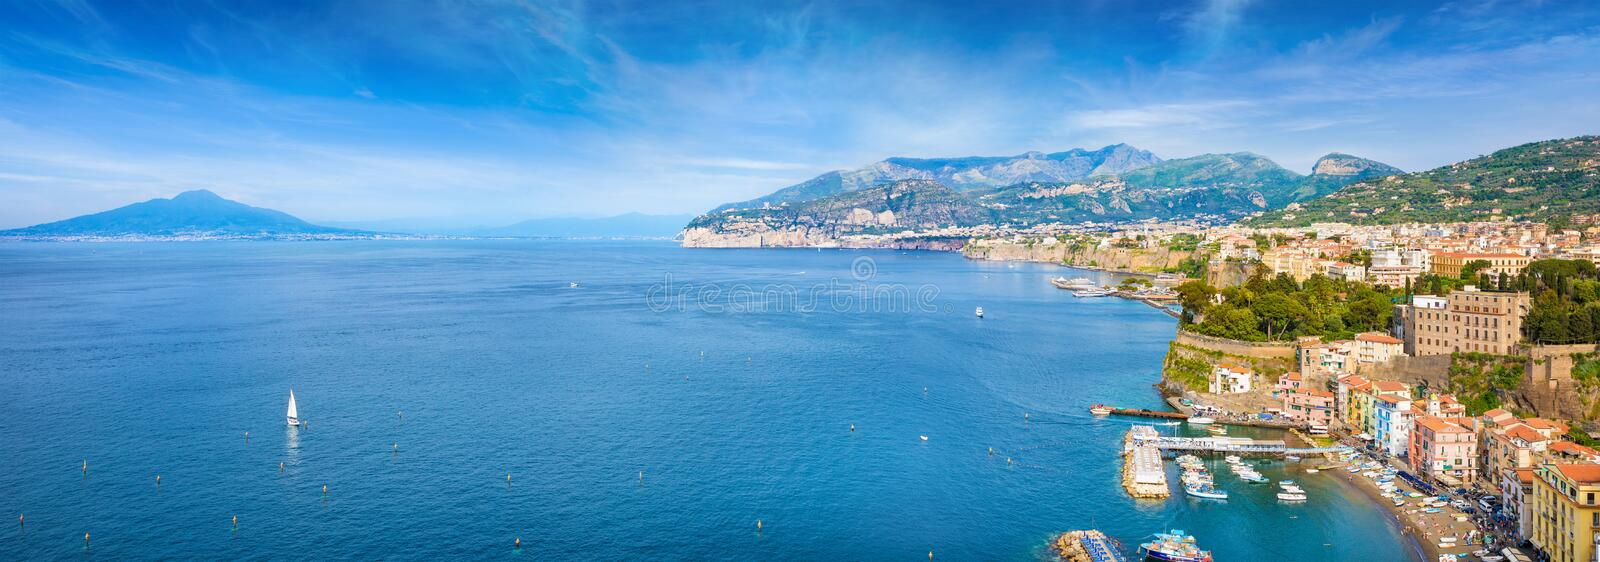 Aerial panoramic view of Marina Grande, cliff coastline Sorrento and Gulf of Naples, Italy. Sea cliffs and luxury hotels of Sorrento attract lot of tourists stock photography